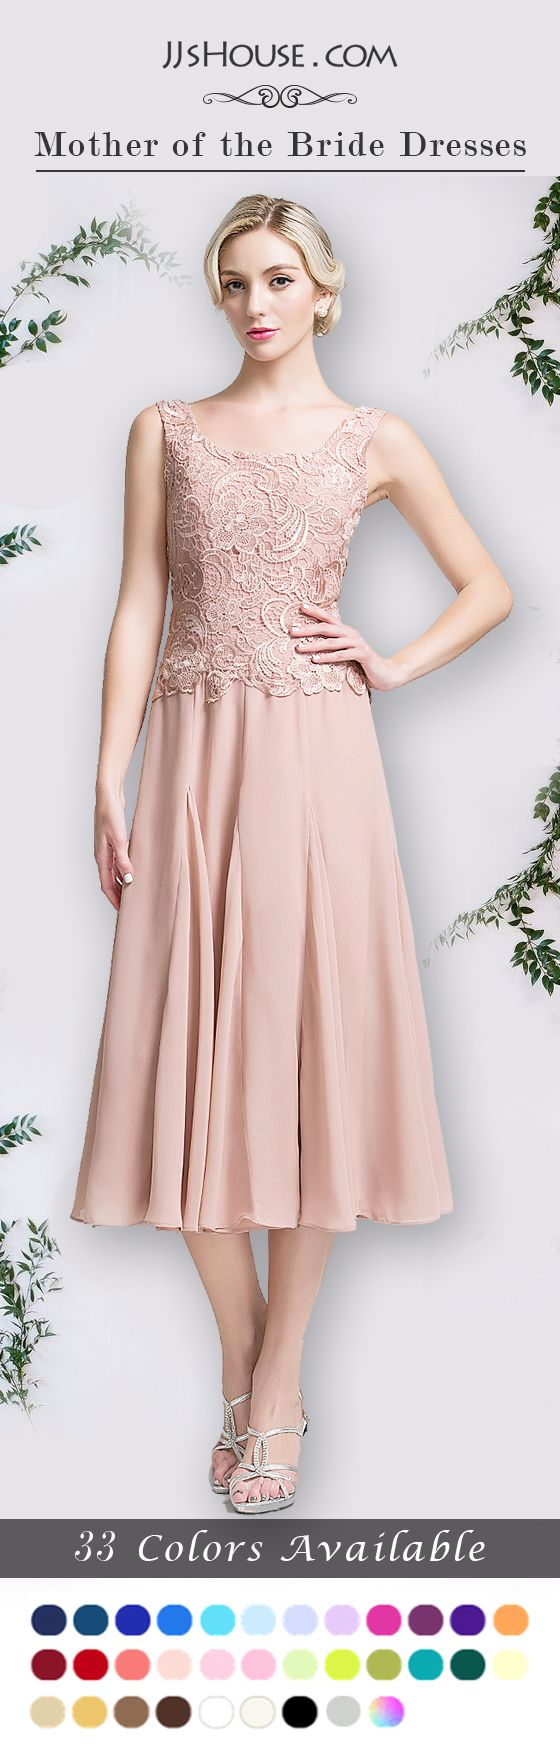 A-Line/Princess Square Neckline Tea-Length Chiffon Mother of the Bride Dress, for spring, summer & fall wear. #JJsHouse